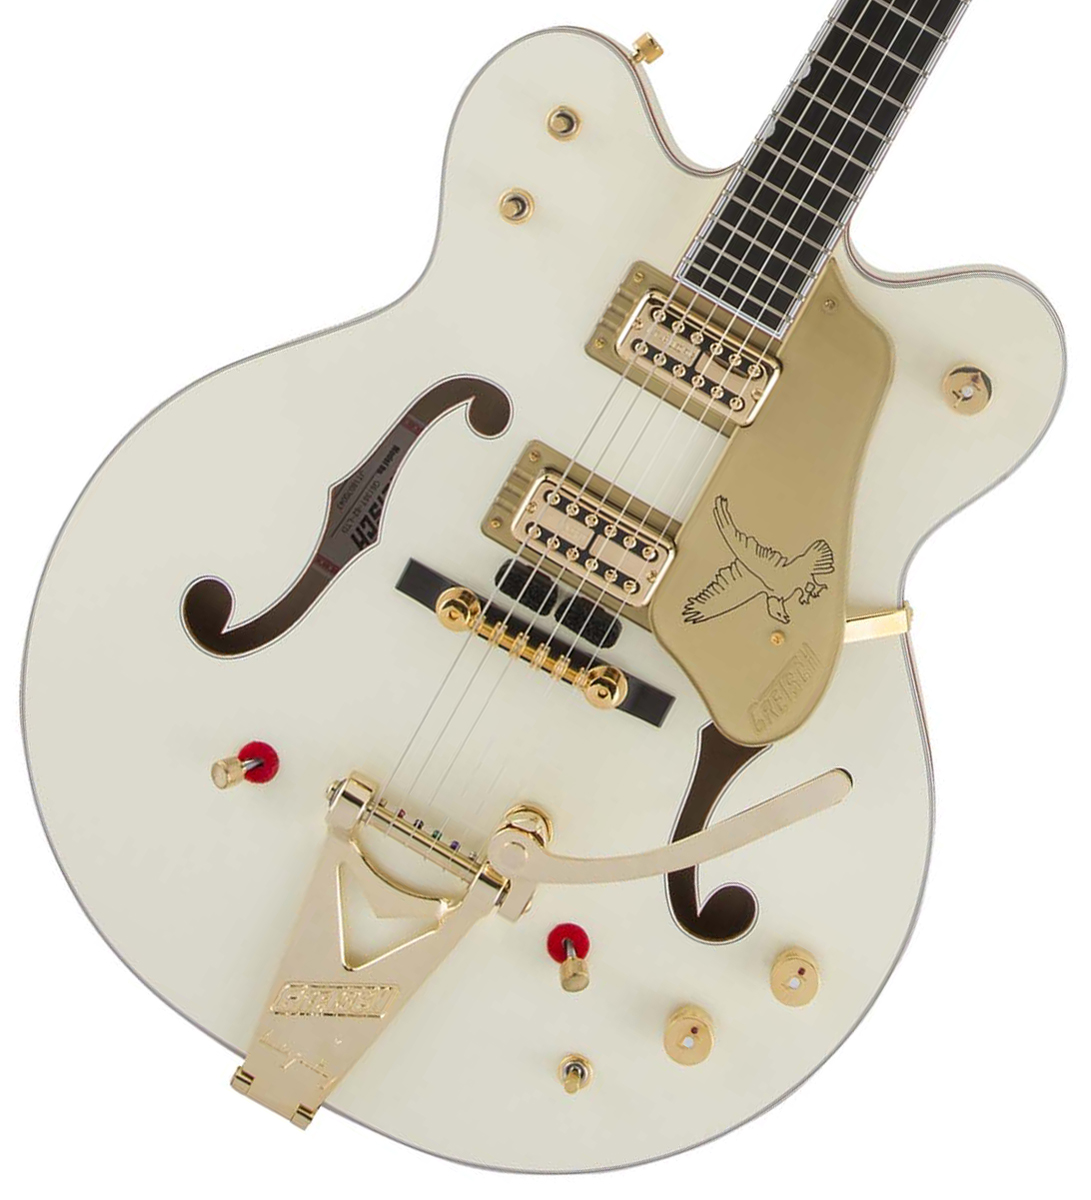 GRETSCH / G6136T-62-LTD Limited Edition Falcon with Bigsby グレッチ 【お取り寄せ商品】